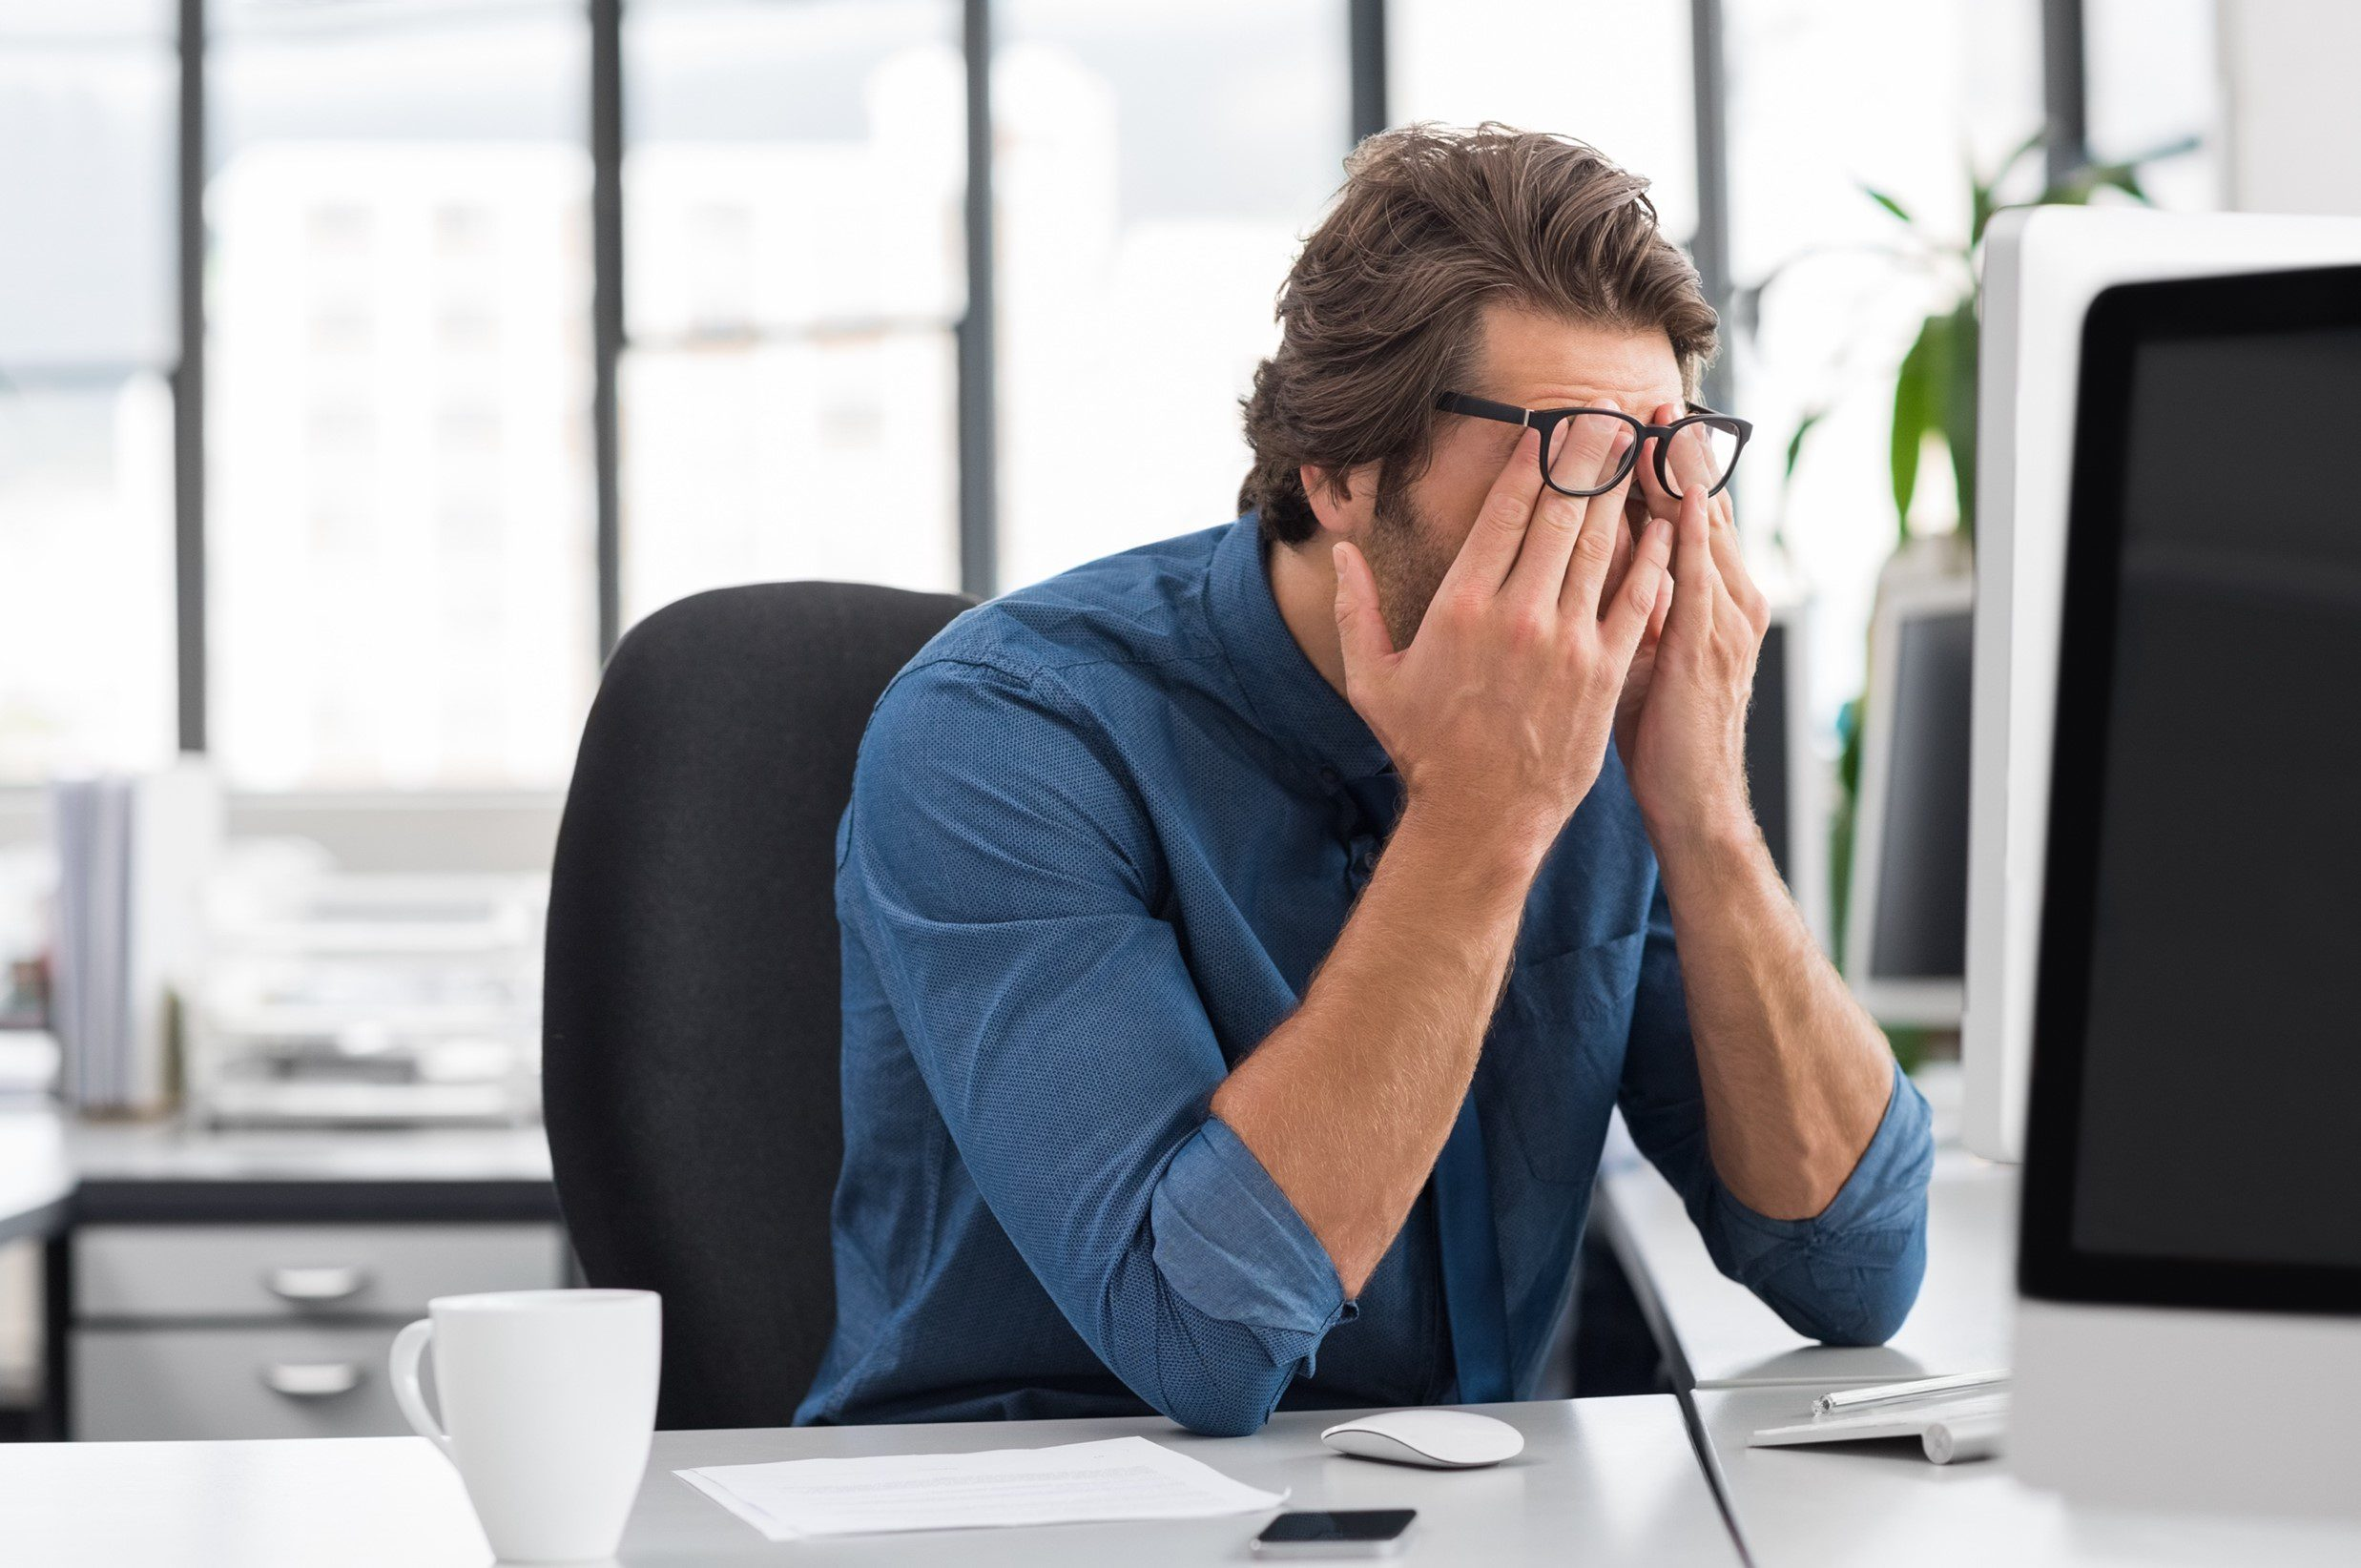 Man with glasses at office desk rubbing his eyes in front of a computer screen